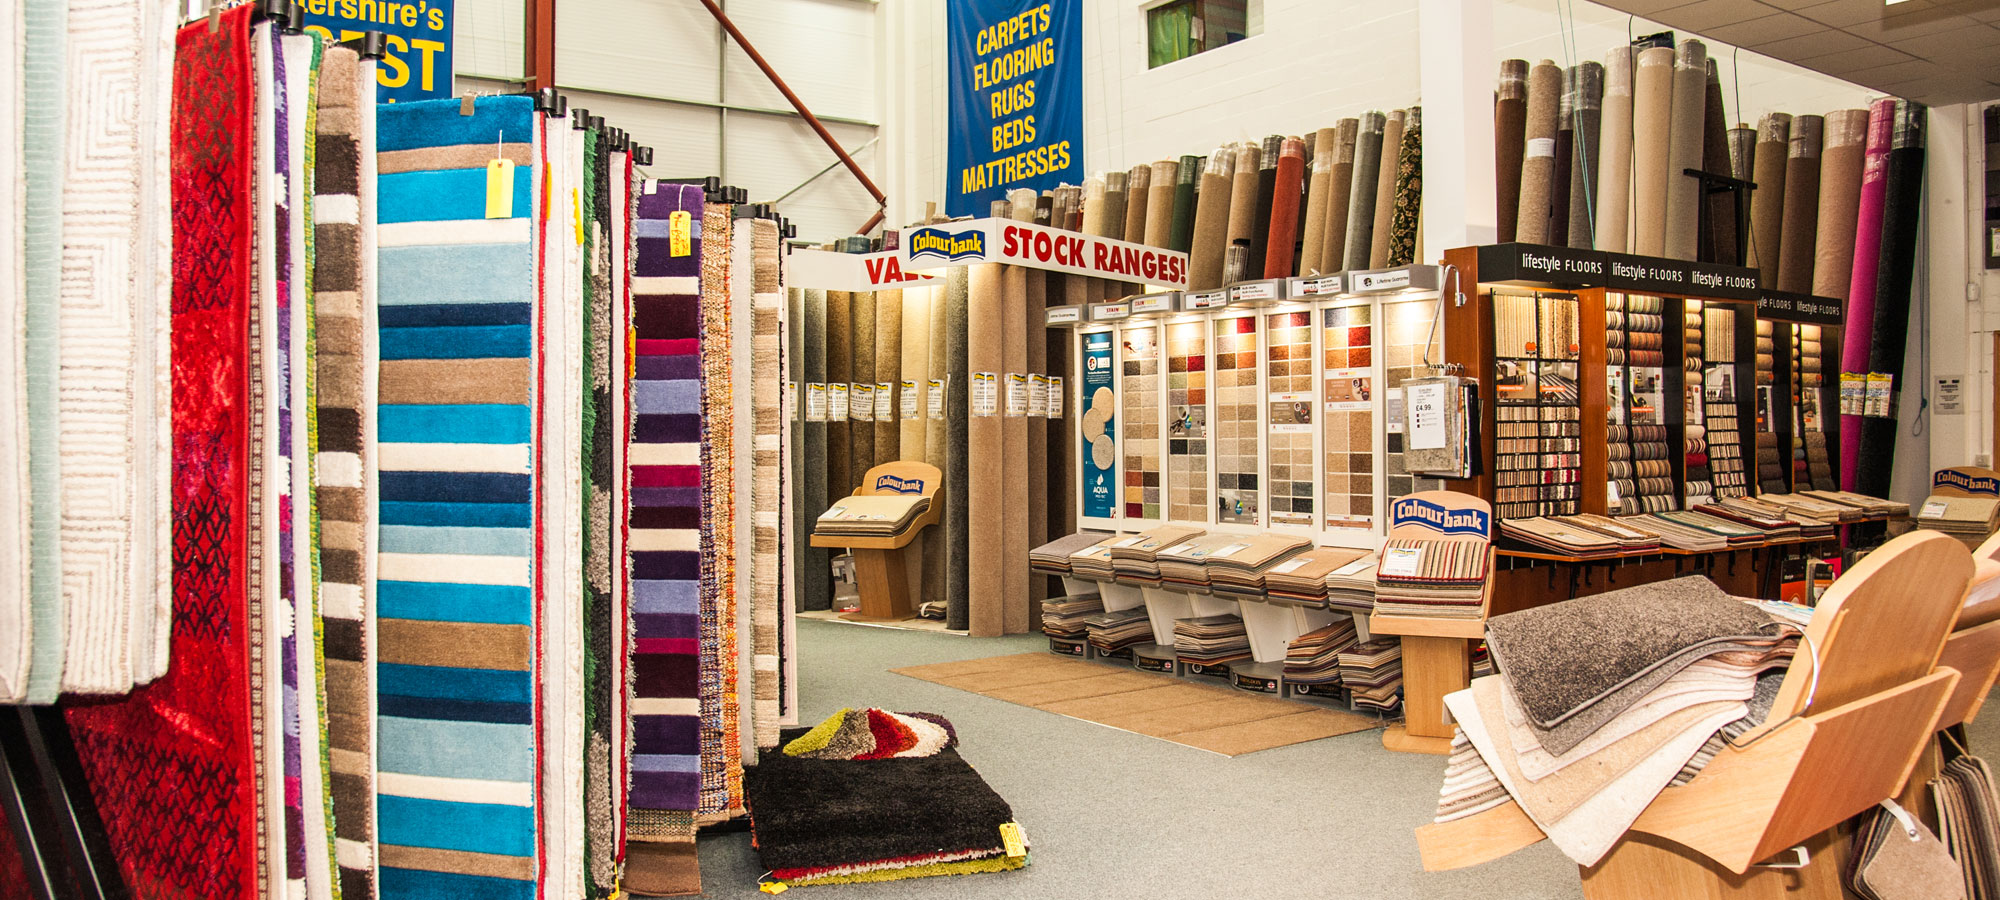 Biggest for carpets Leicester